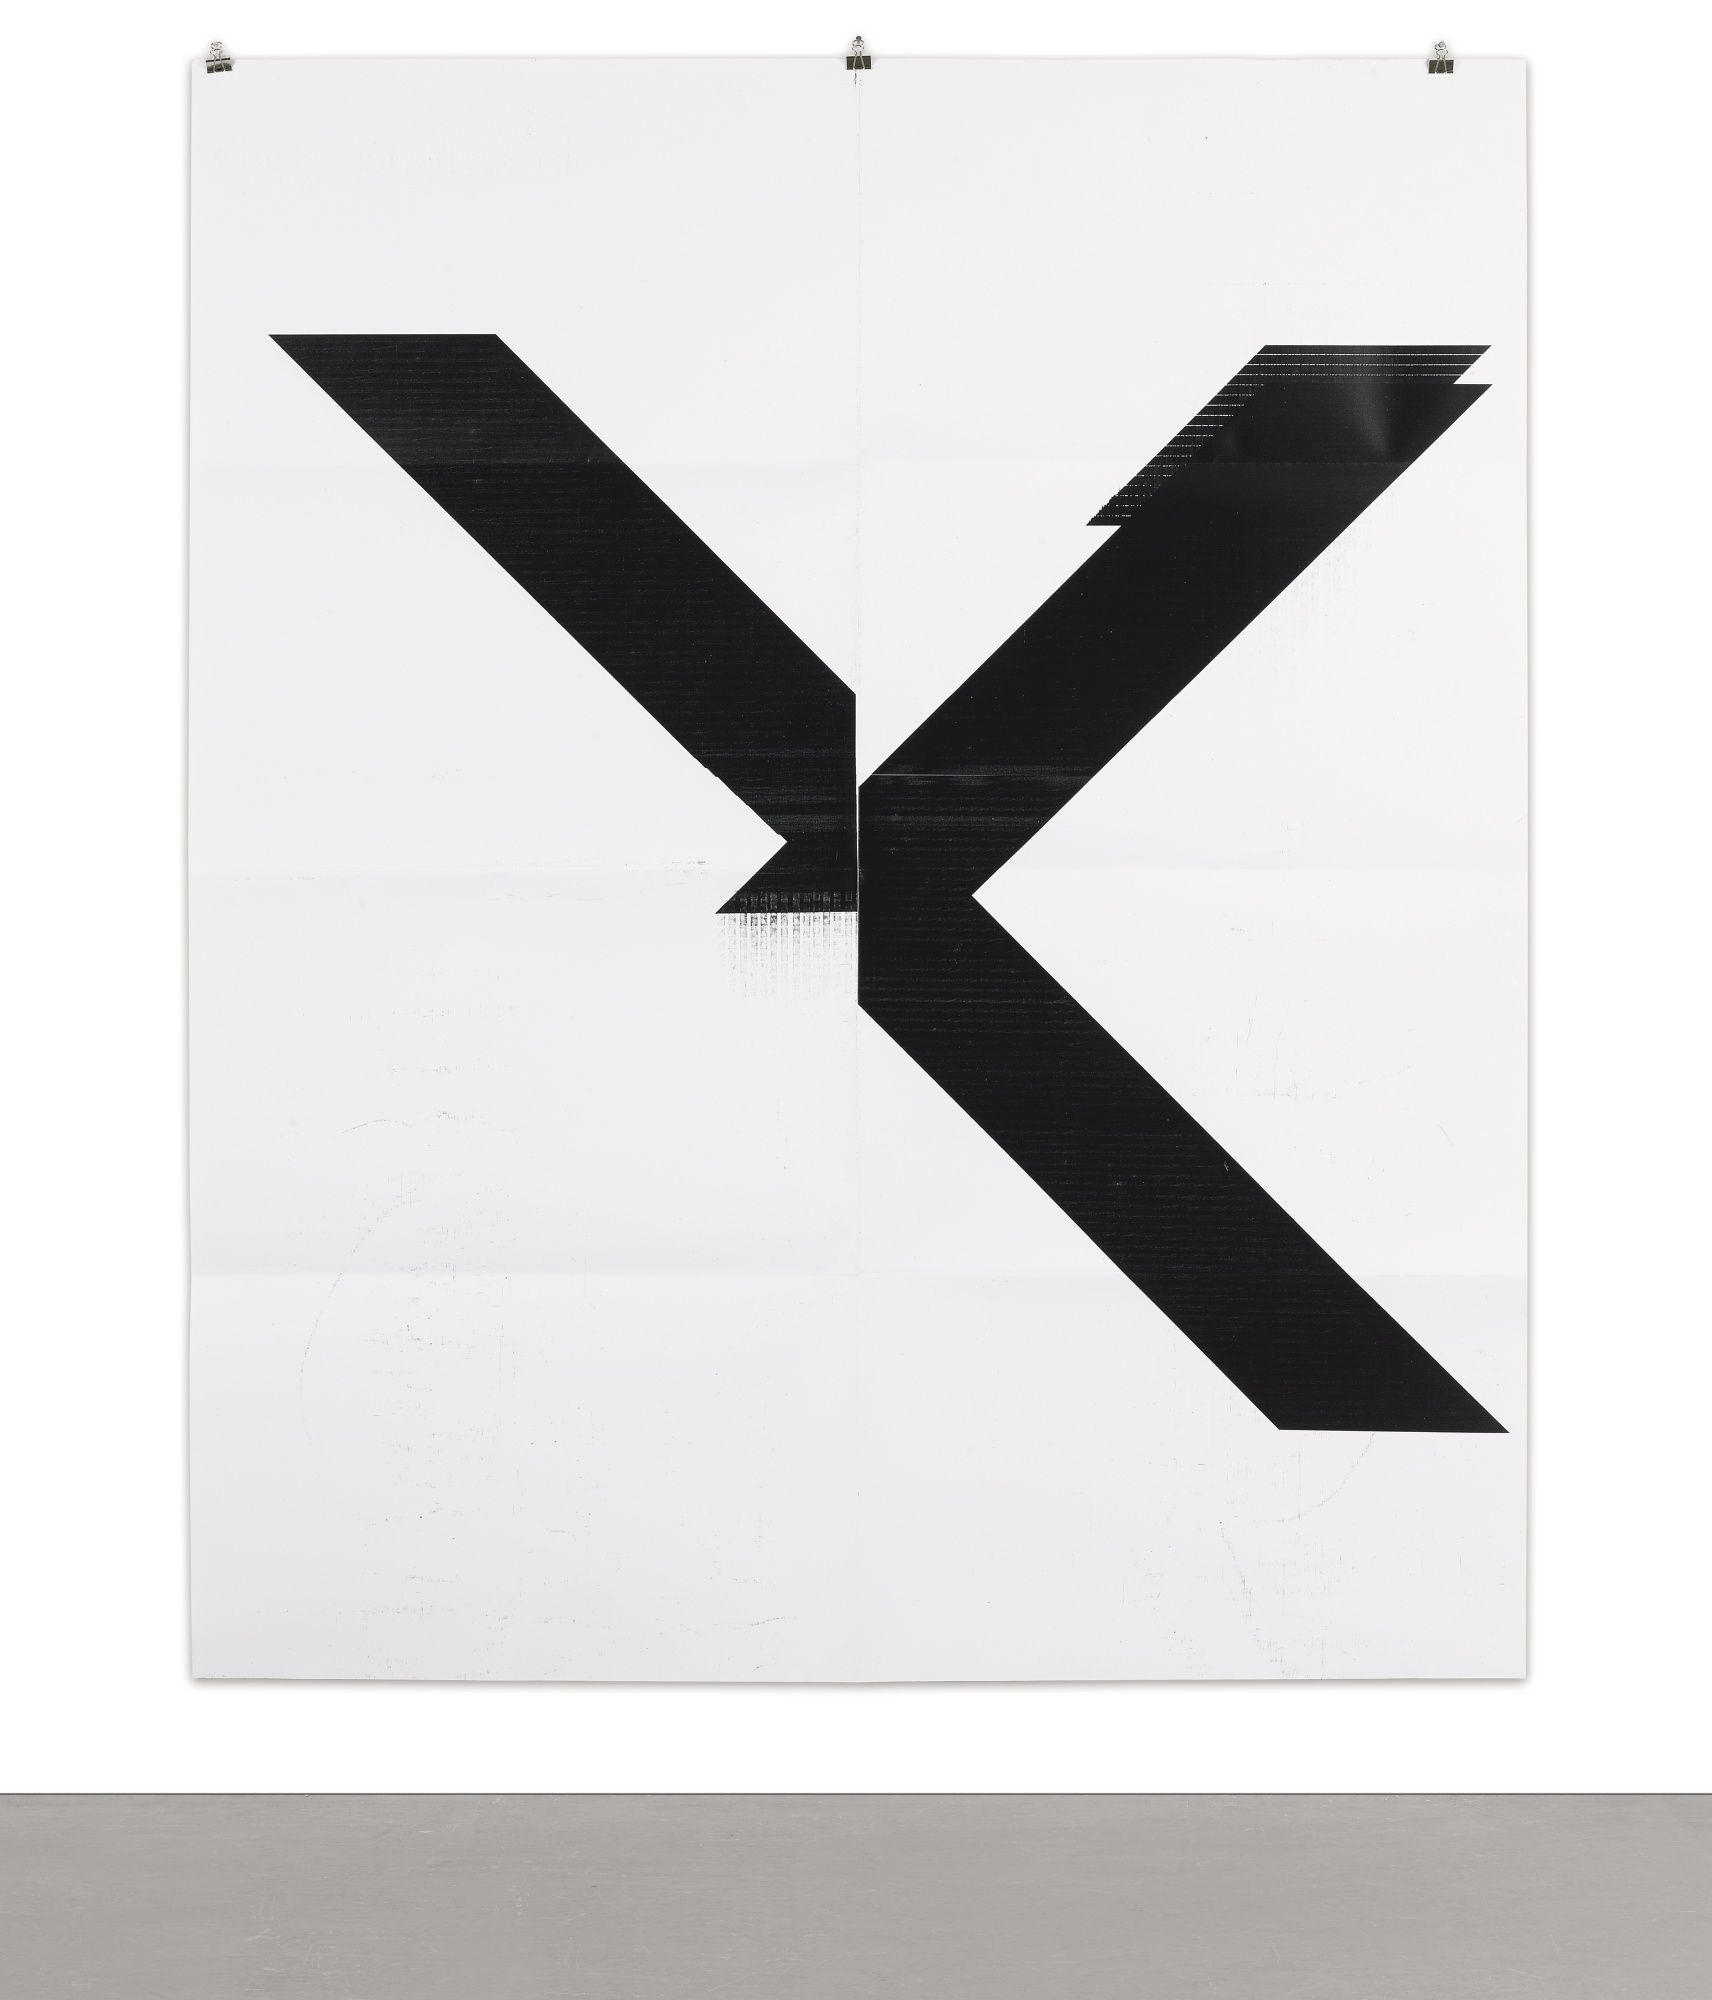 Wade Guyton B.1972 X POSTER (UNTITLED, 2007, EPSON ULTRACHROME INKJET ON LINEN, 84 X 69 IN, WG1999) signed and numbered 41/100 on a label affixed to the sleeve hand-folded digital print on paper with archival UV curable ink 84 by 69 in. 213.4 by 175.3 cm. Executed in 2015, this work is number 41 from an edition of 100, published by Printed Matter, Inc., New York, contained in the original cardboard sleeve.